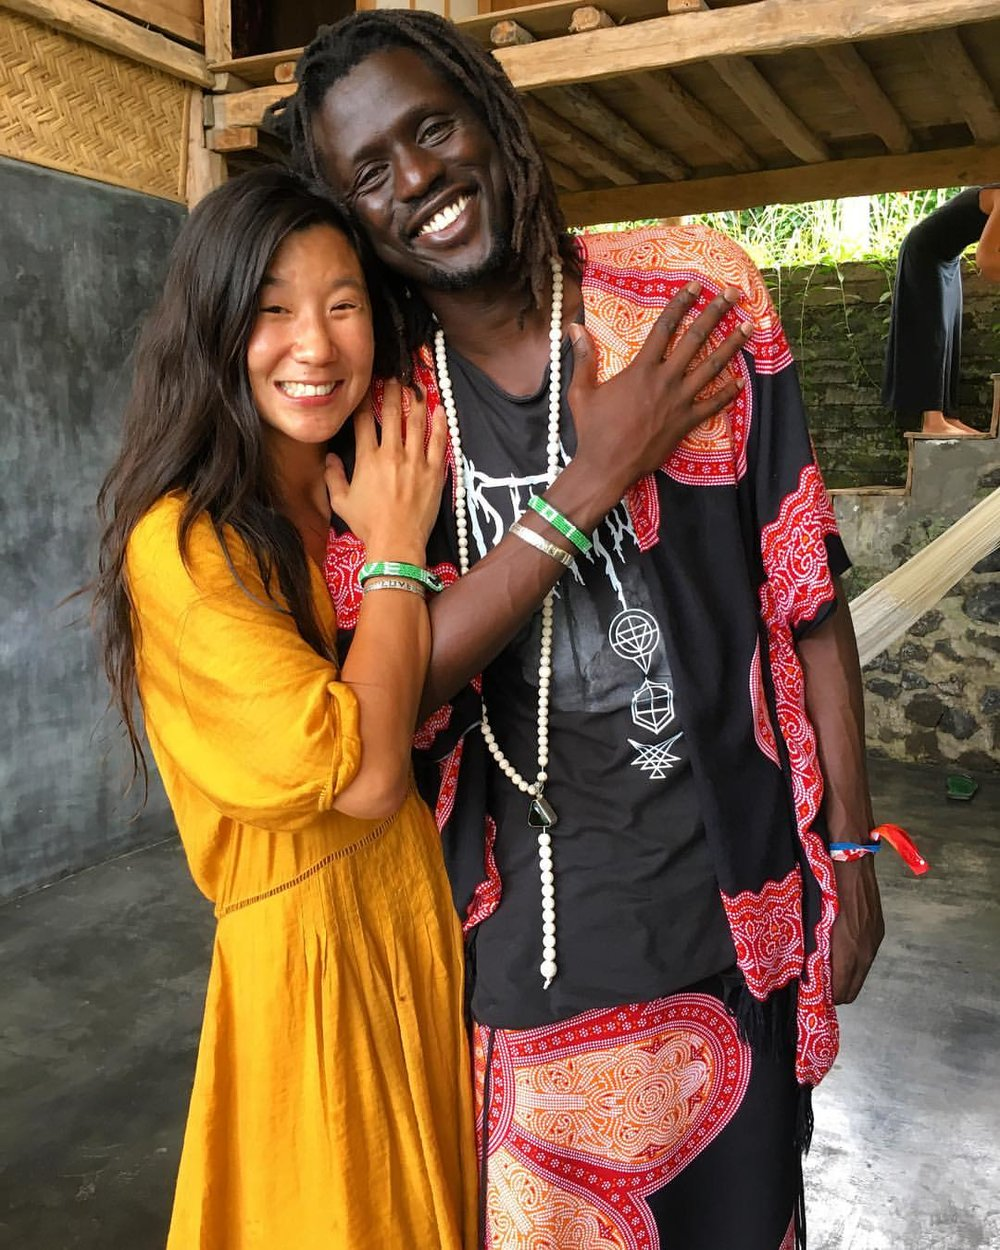 "INSTAGRAM PHOTO via  @  thesupplychange  ""Love & Peace. Grateful to have original supporter  @emmanueljal  a part of the  @loveisproject   #loveisgreen  photoshoot today in  #Bali . Beautiful day hanging with friends & sharing the love.  #wewantpeace   #loveisproject """